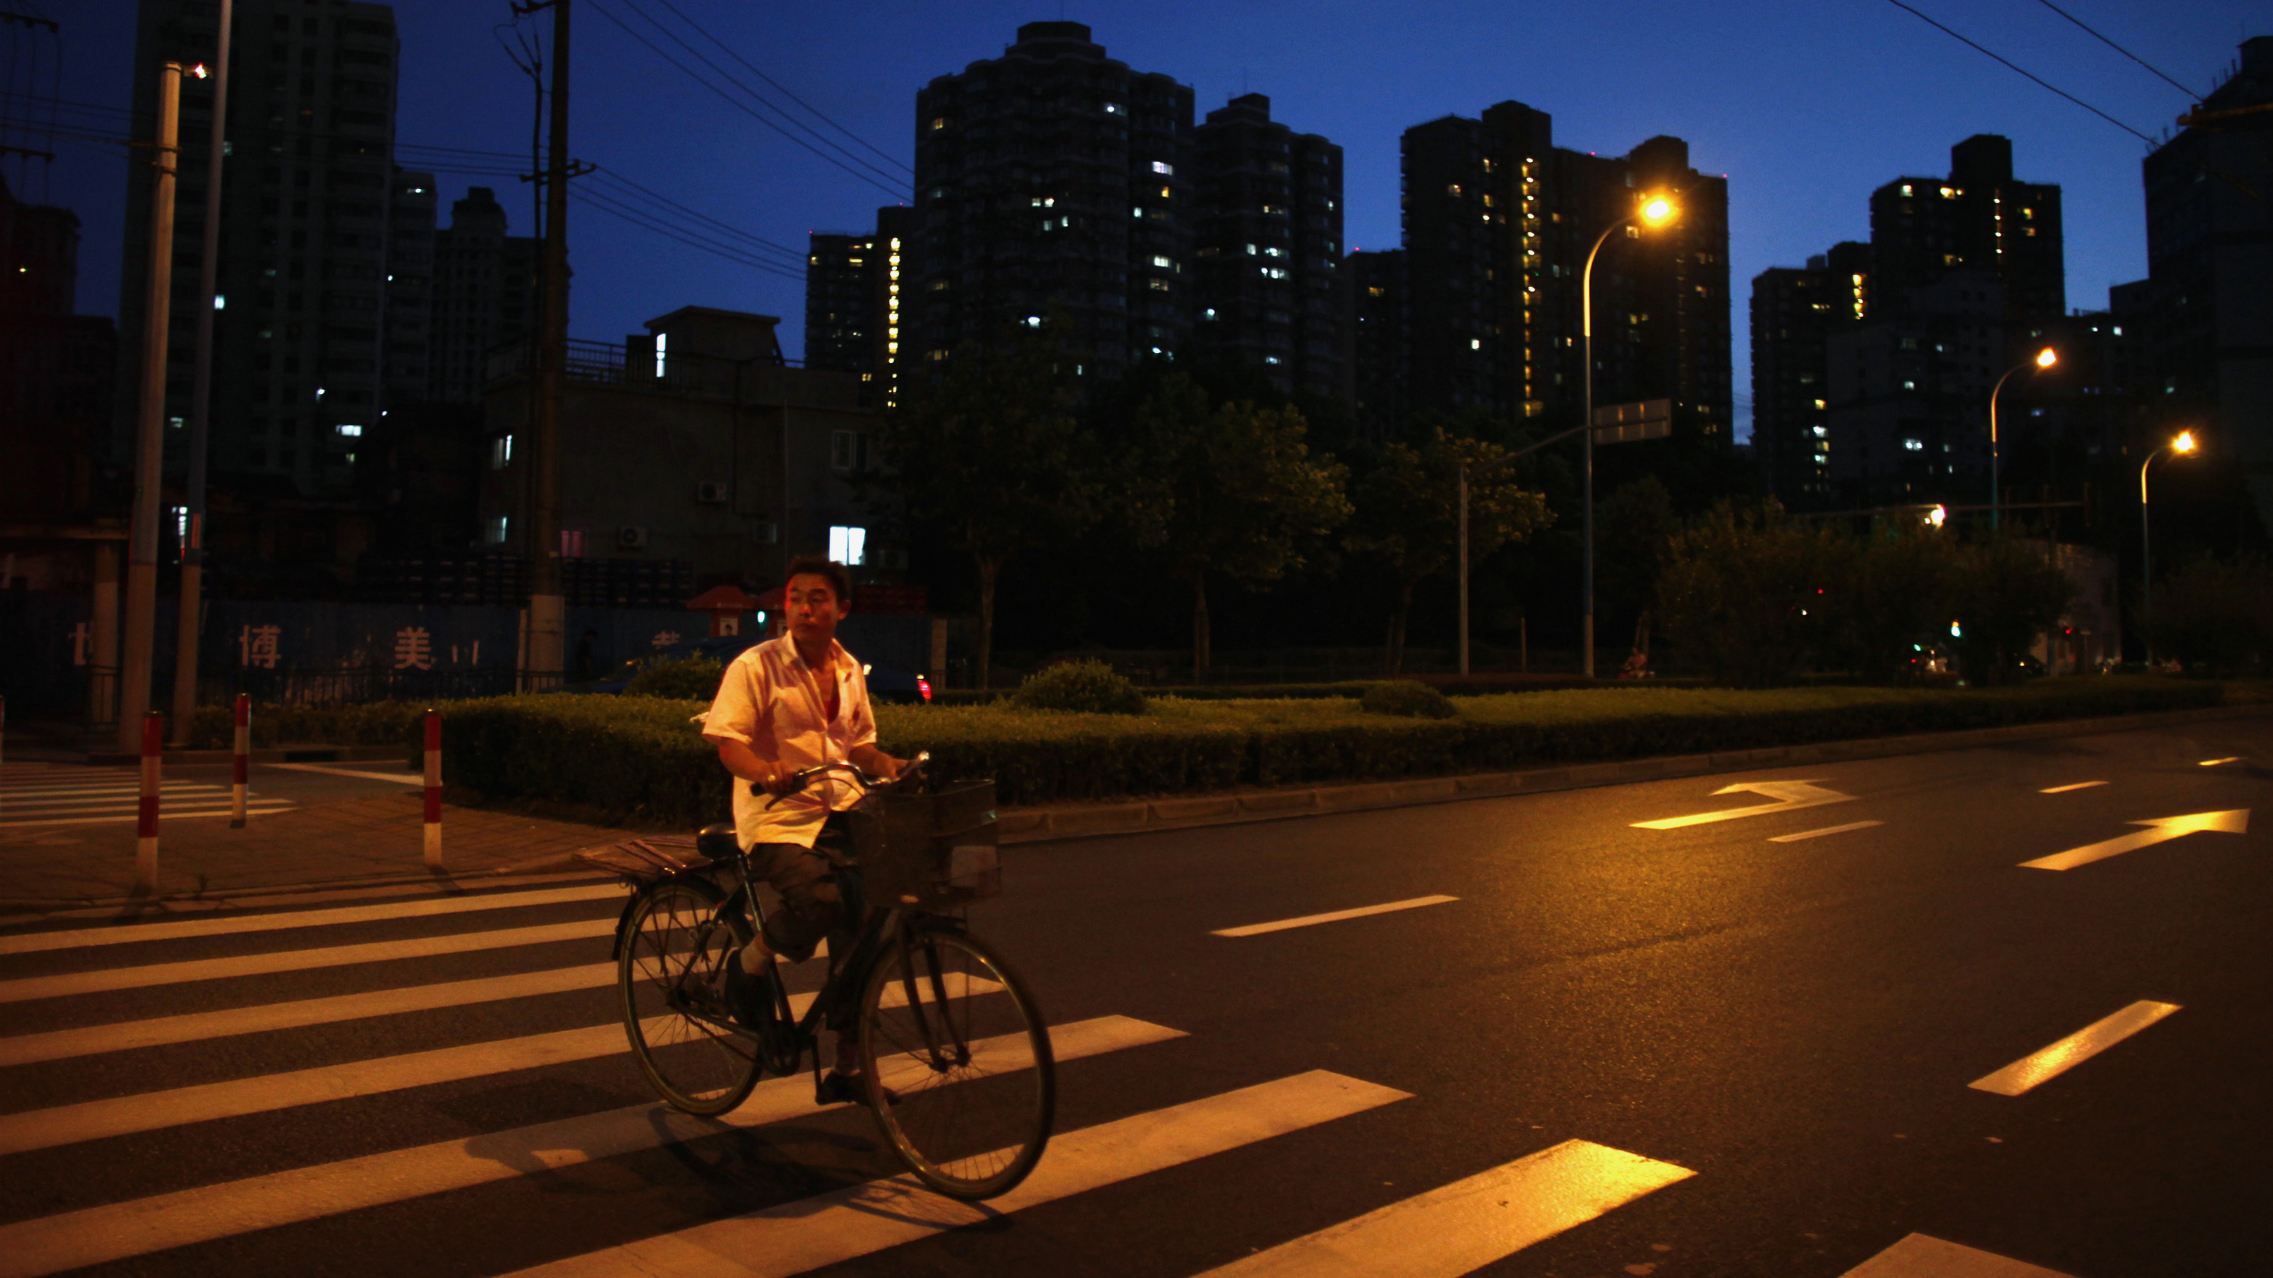 A man rides his bicycle at a residential area in downtown Shanghai August 24, 2012. China is studying new tightening measures to strengthen controls on the property market, the official Xinhua news agency said late on Thursday, citing the Ministry of Housing and Urban-Rural Development. REUTERS/Carlos Barria